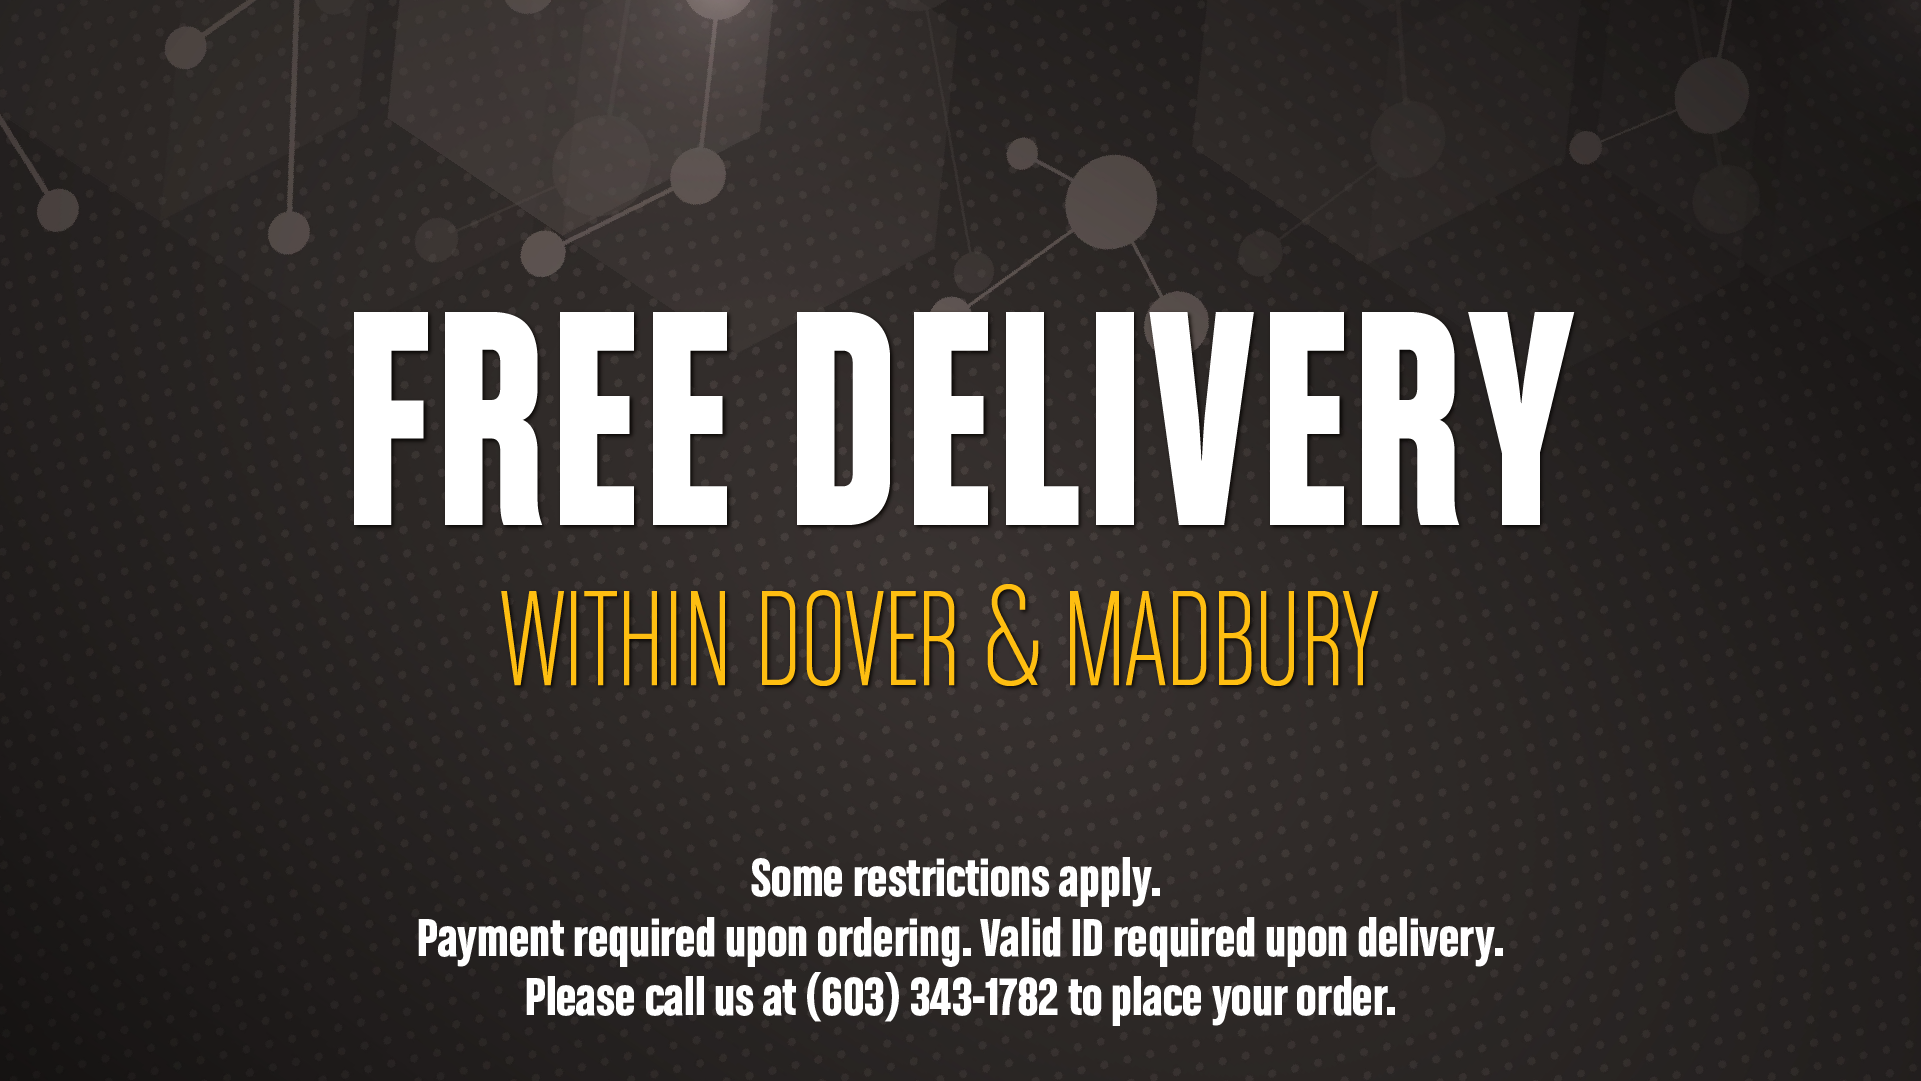 FREE DELIVERY WEB